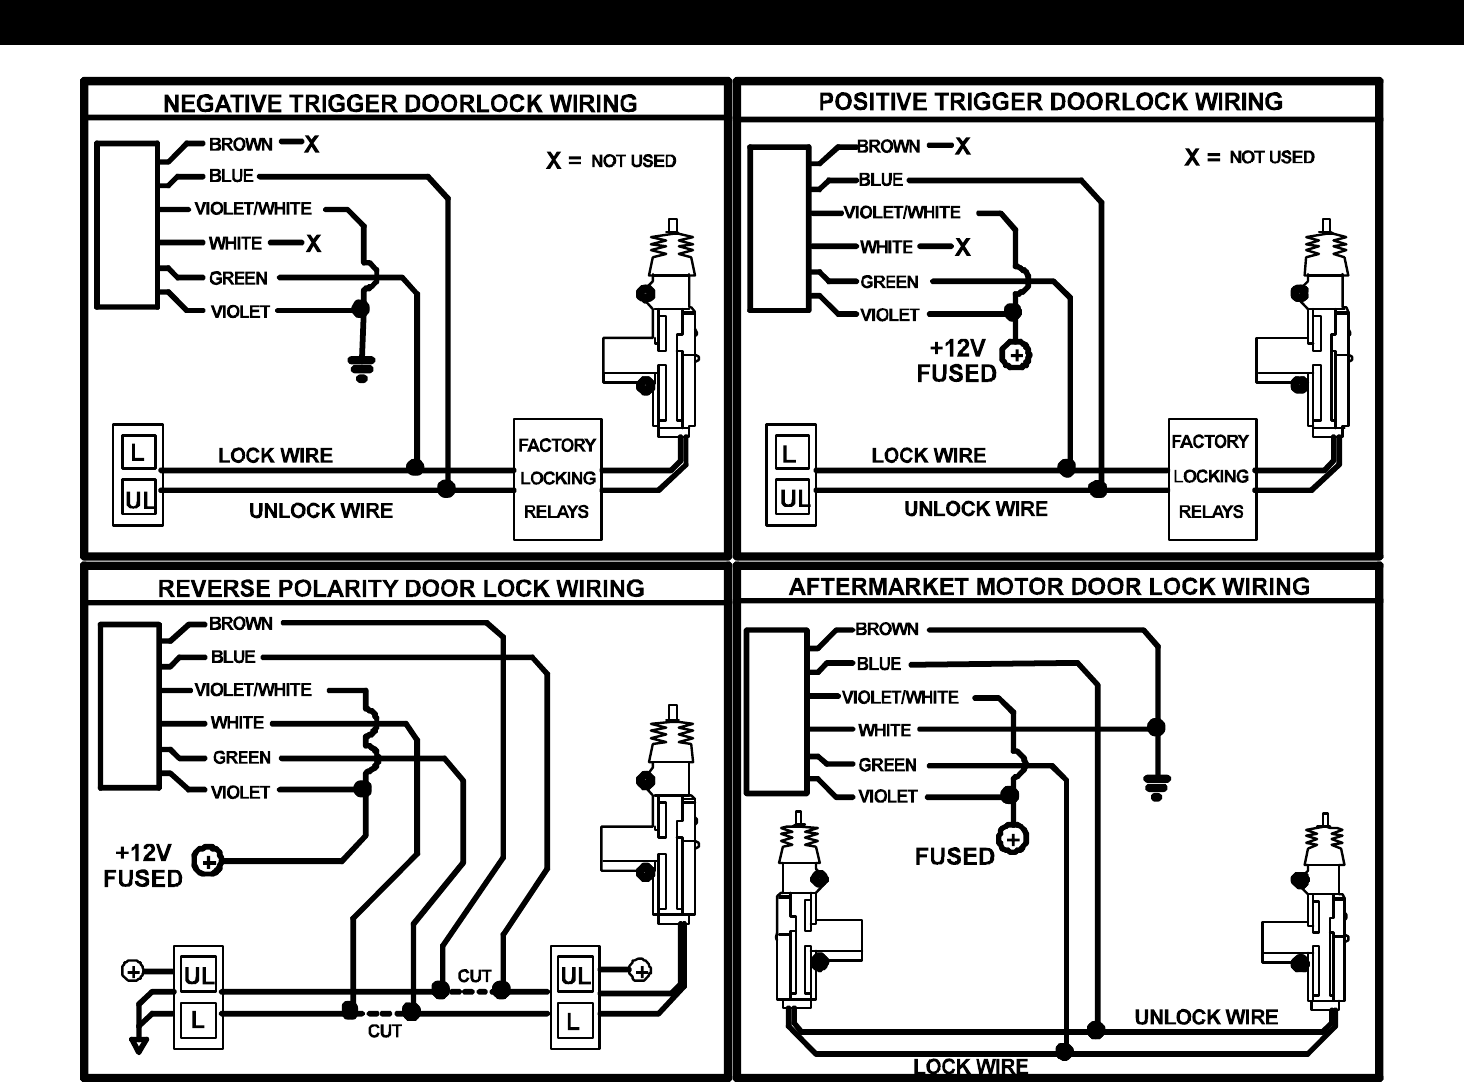 a8413788 0d4b 4ba0 848e 782364050129 bg6 page 6 of crimestopper security products automobile alarm cs 2205 crimestopper sp 101 wiring diagram at highcare.asia